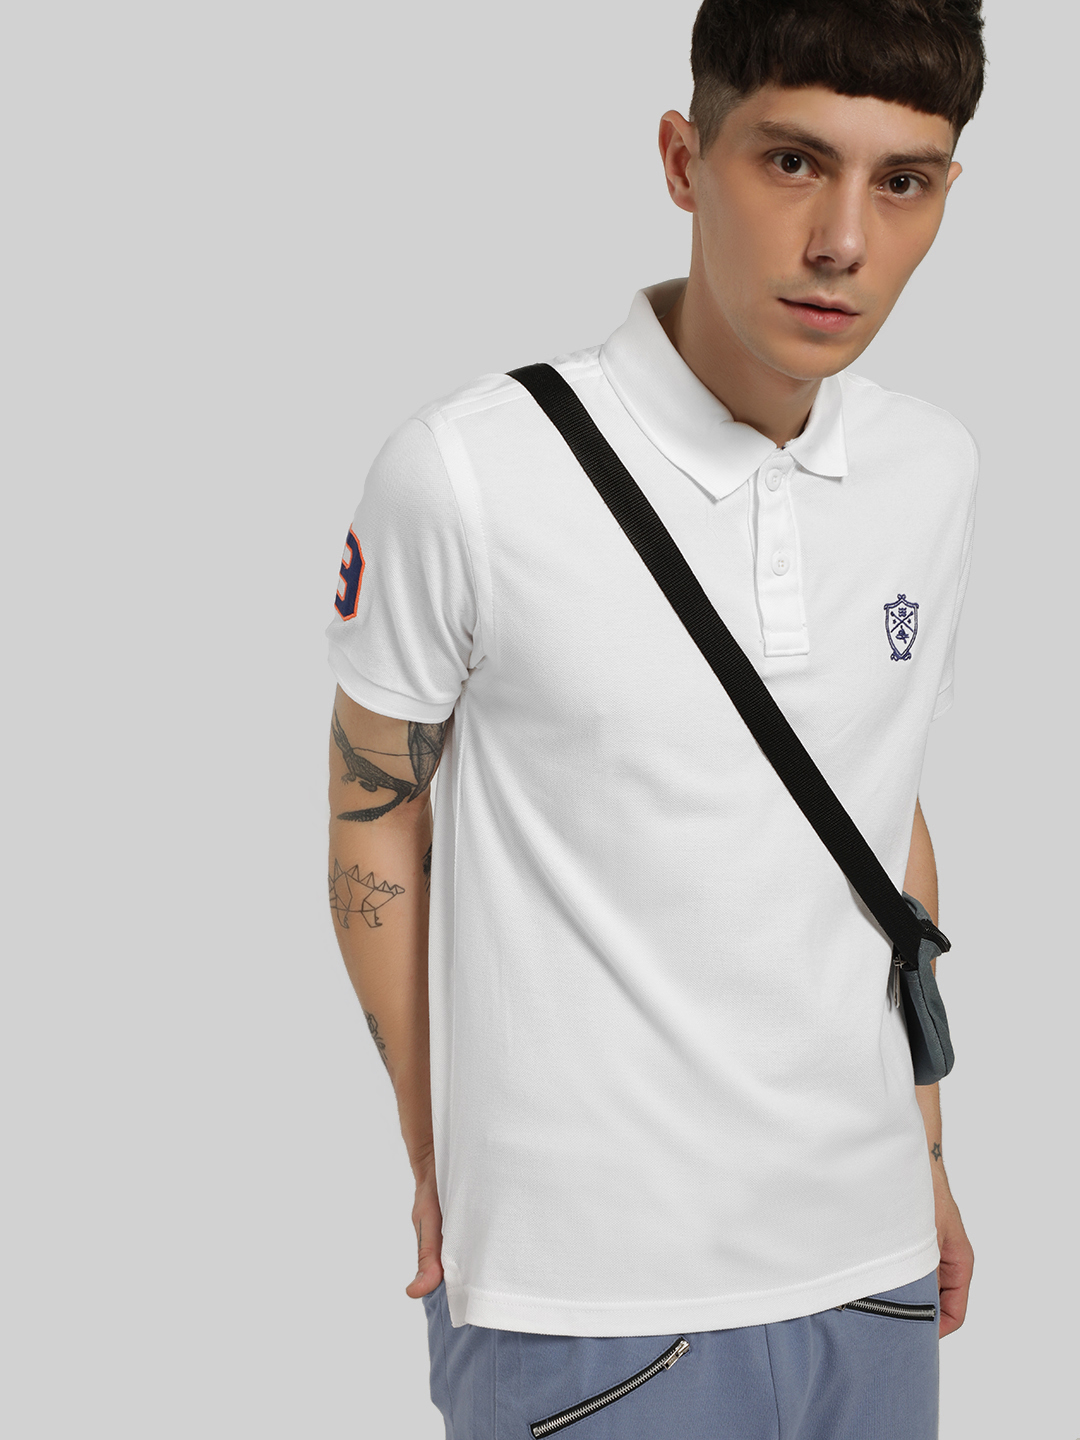 SCULLERS White Embroidered Logo Polo Shirt 1